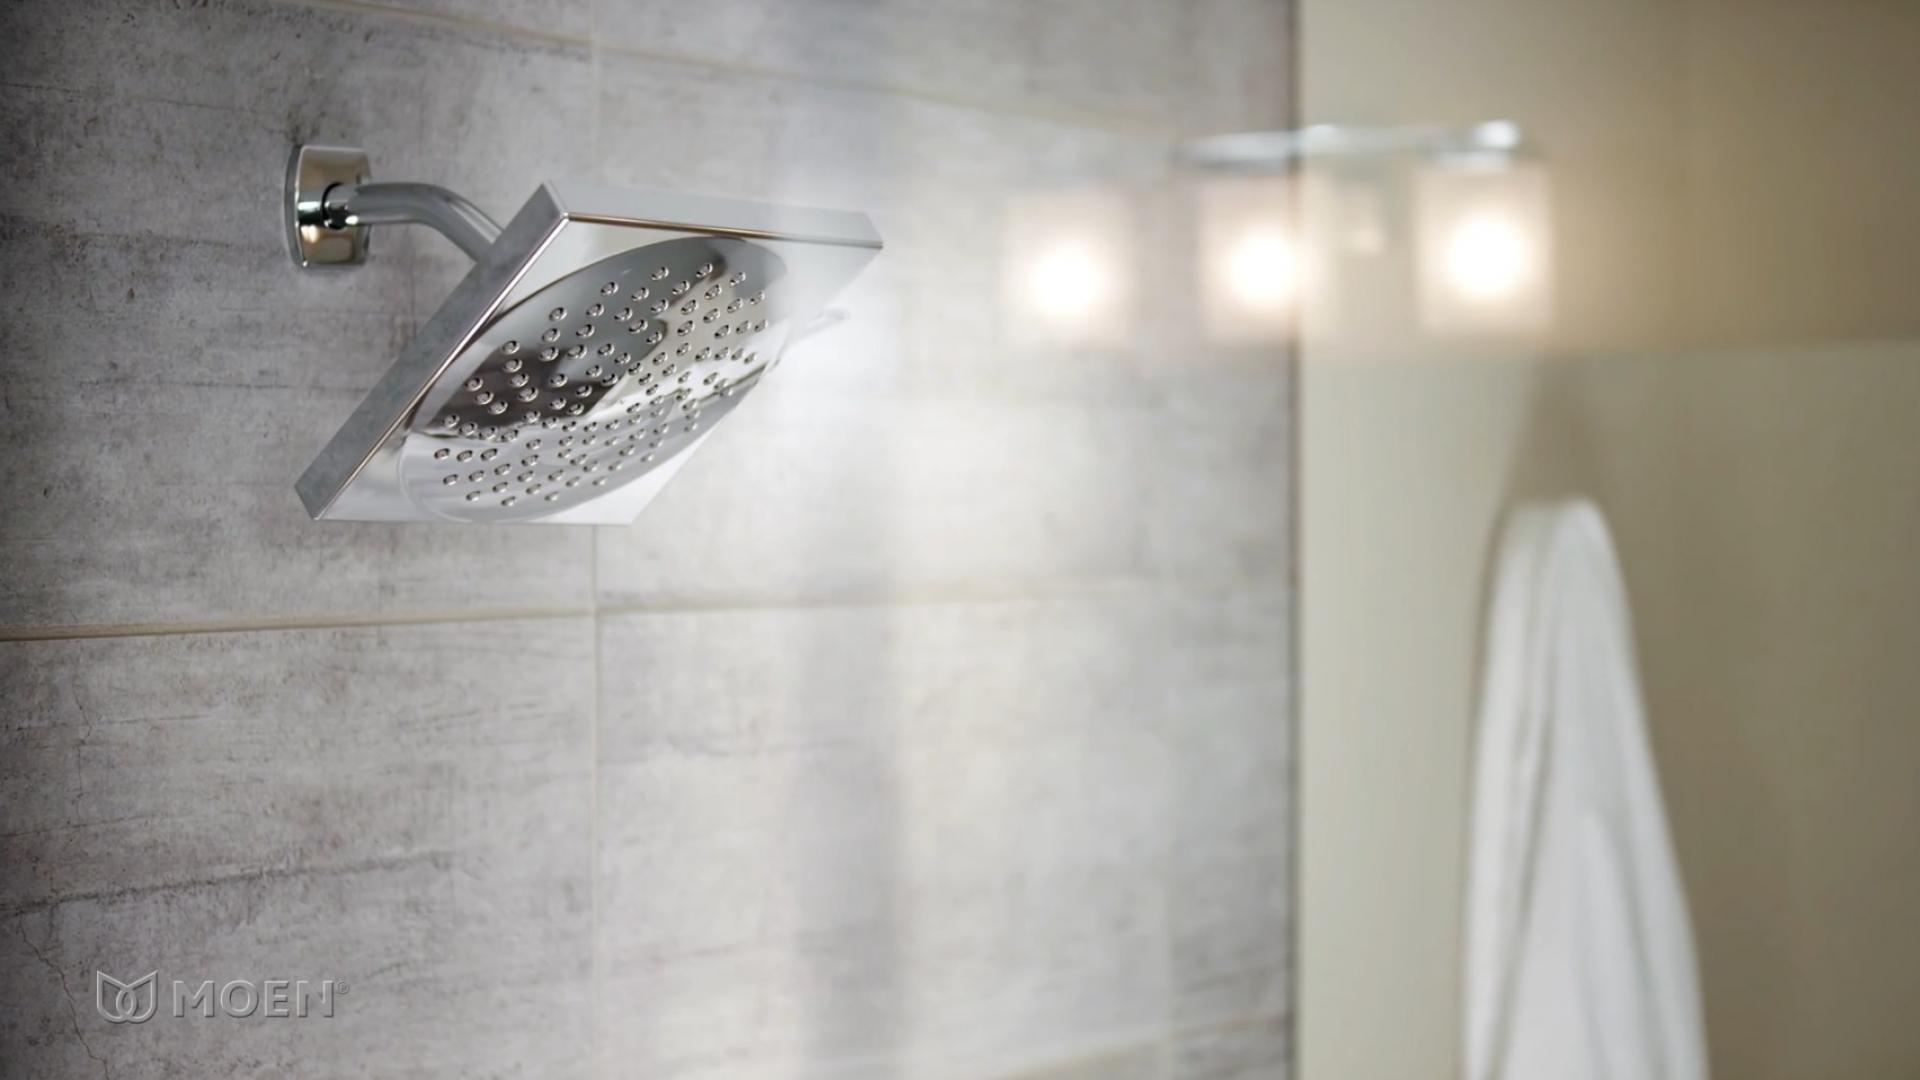 Moen Velocity 2-Function Shower Head